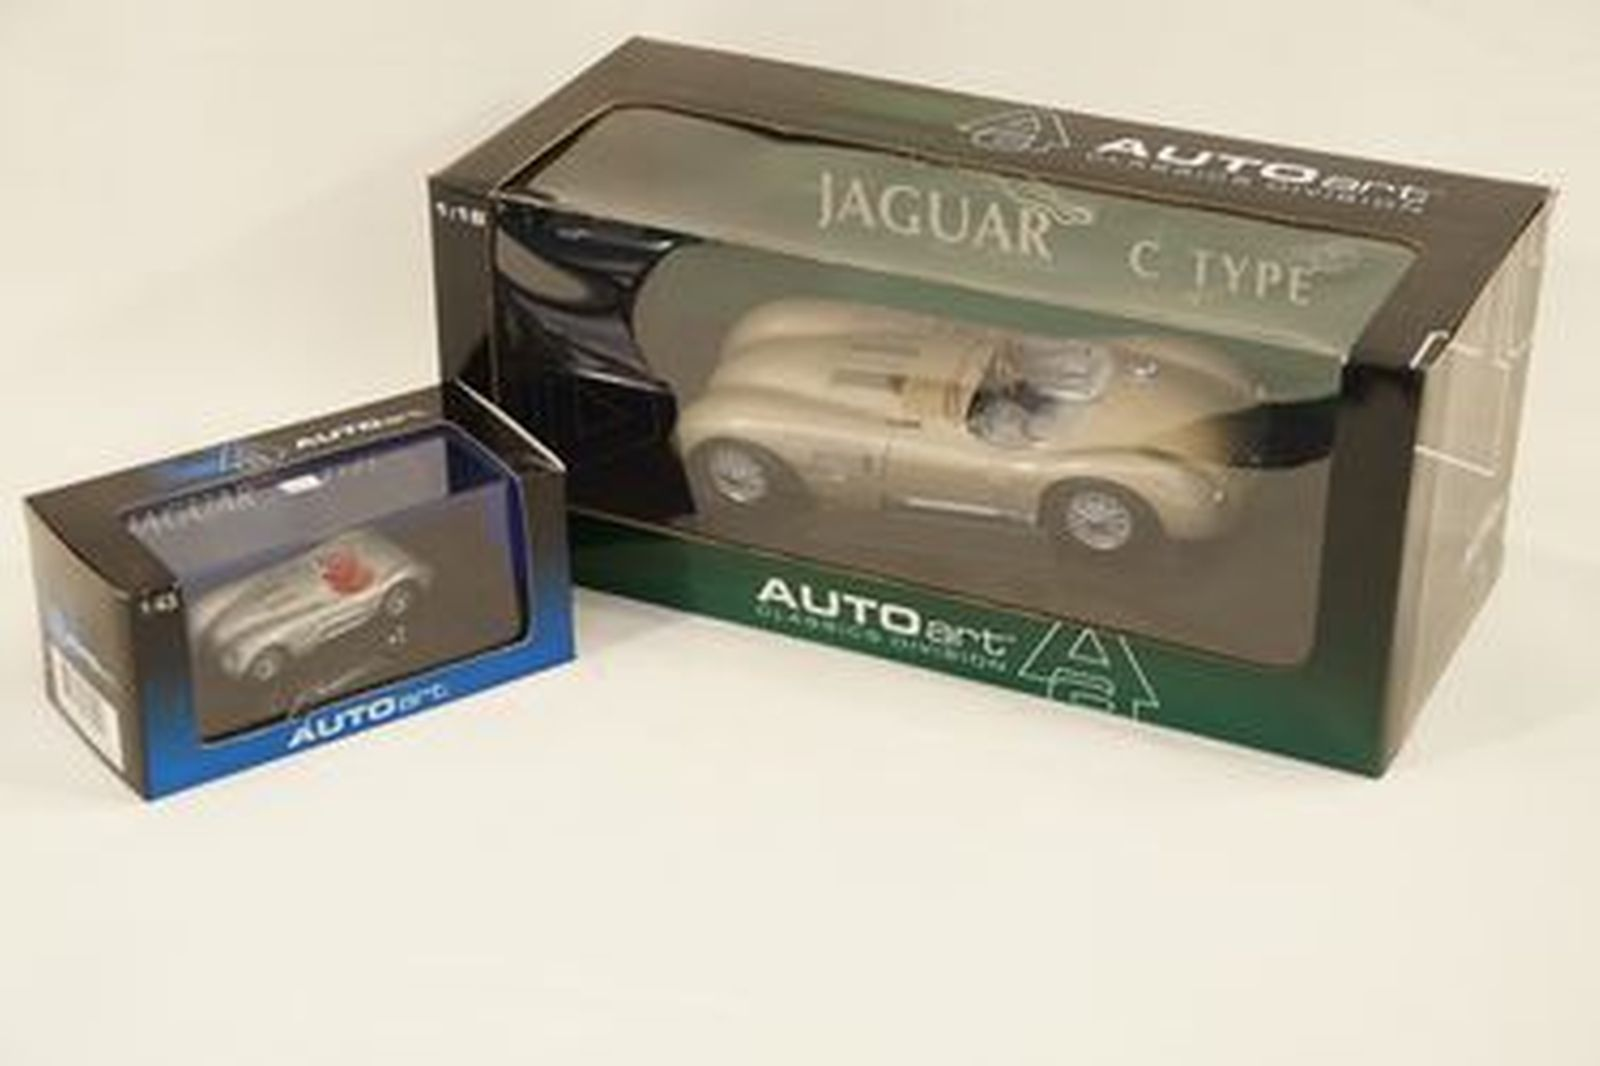 Model Cars x 2 - Autoart Jaguar C-Type Bronze (1:18 scale) & C-Type Silver (1:43 scale) with boxes